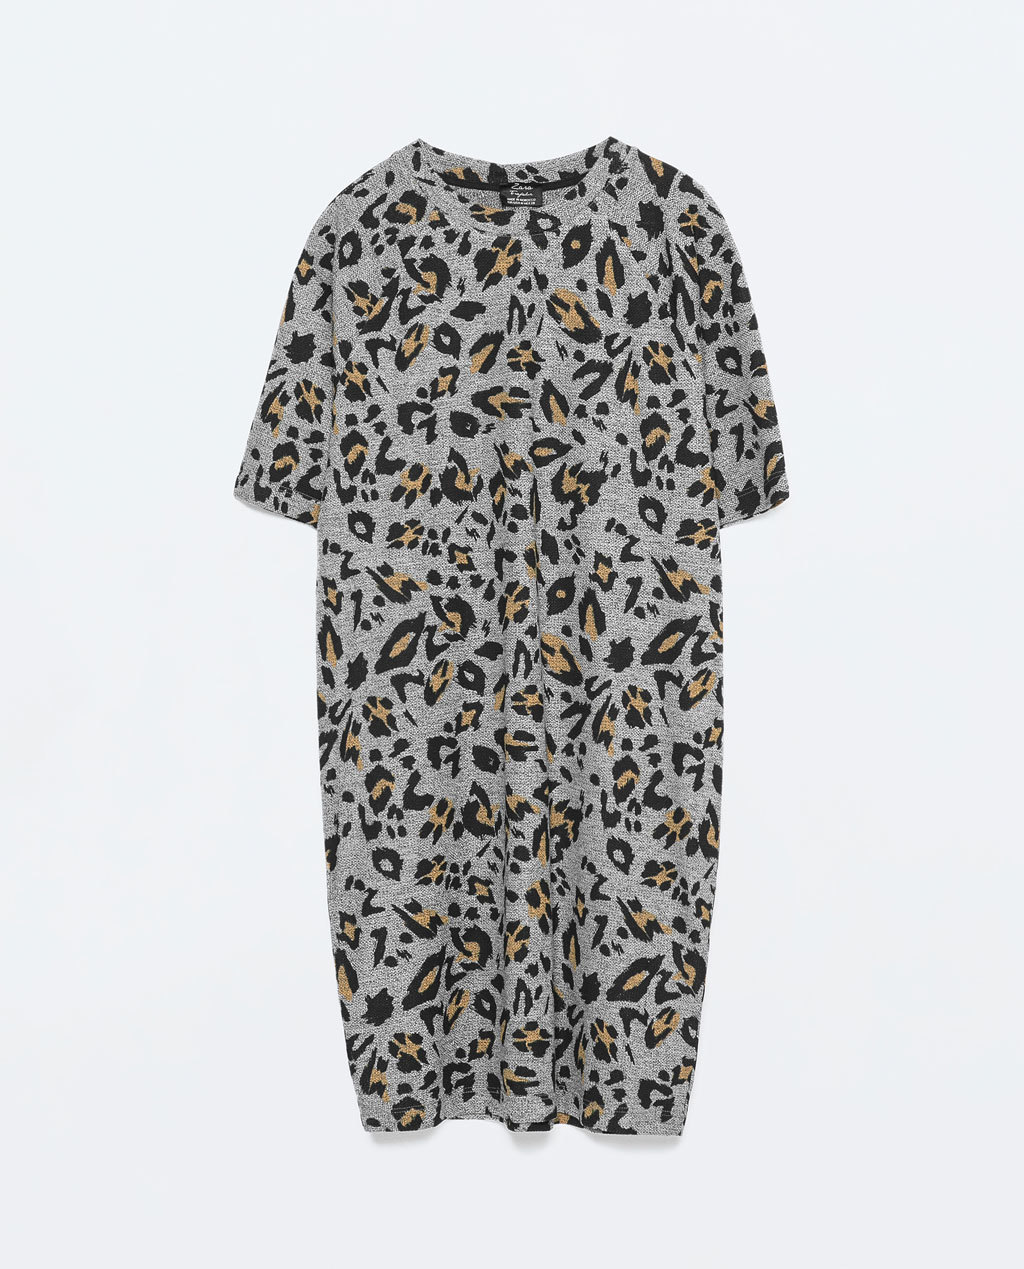 Printed Dress - style: jumper dress; length: mid thigh; fit: loose; predominant colour: mid grey; secondary colour: black; occasions: casual, creative work; neckline: crew; sleeve length: short sleeve; sleeve style: standard; pattern type: fabric; pattern size: standard; pattern: animal print; texture group: jersey - stretchy/drapey; fibres: viscose/rayon - mix; season: s/s 2015; wardrobe: highlight